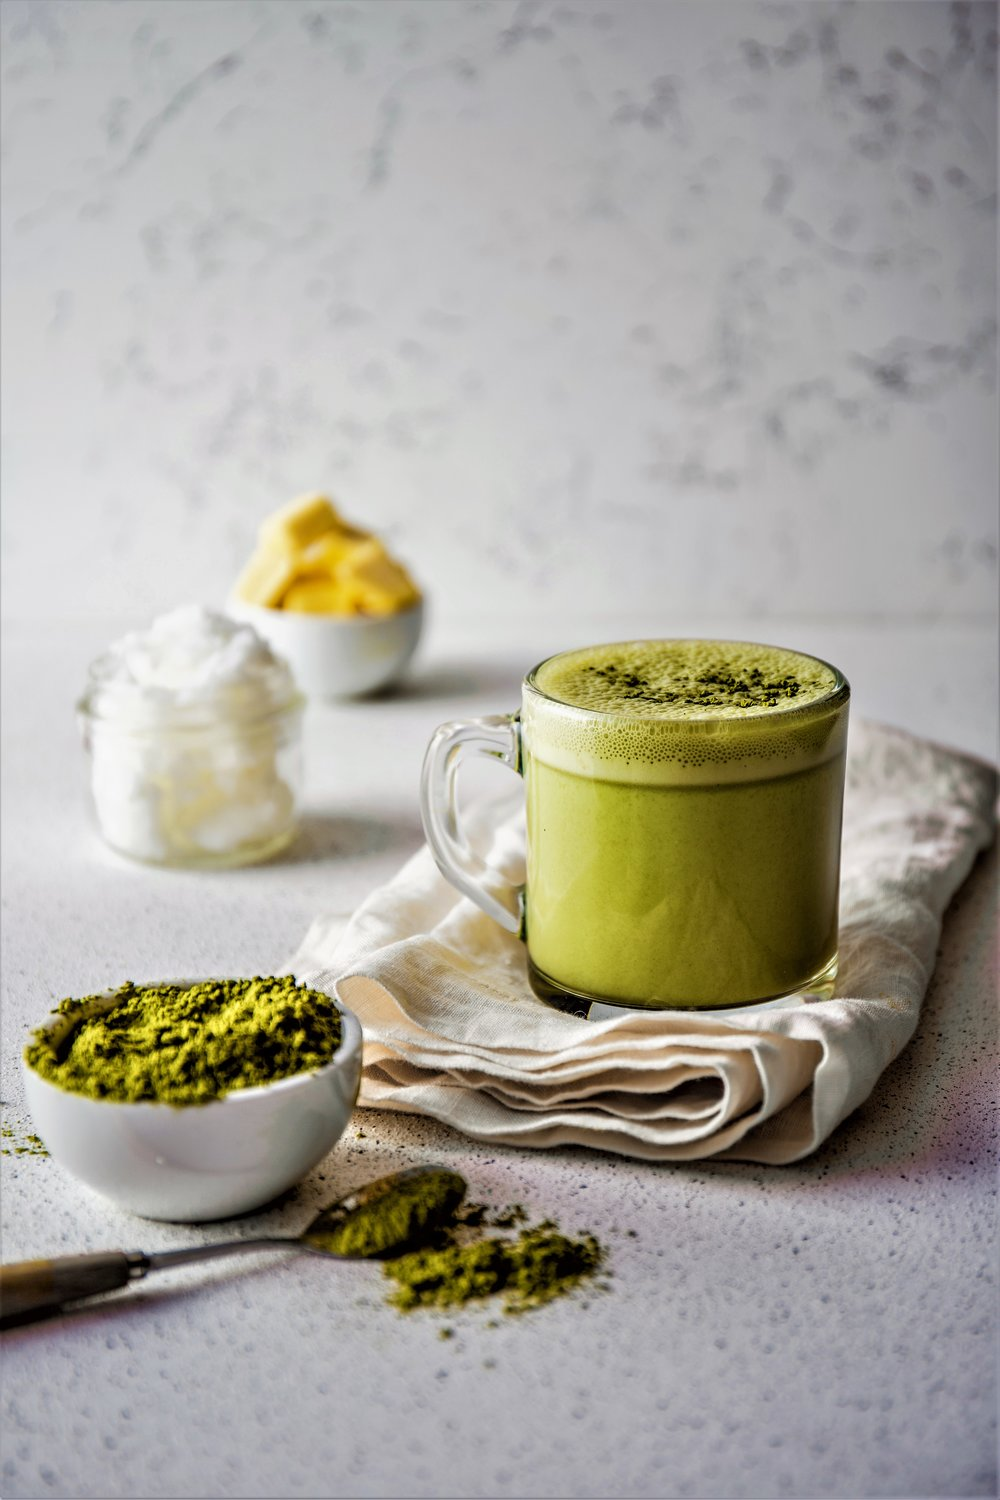 BULLETPROOF MATCHA. Ketogenic keto diet hot drink. Tea matcha blended with coconut oil and butter. Cup of bulletproof matcha and ingredients.jpg